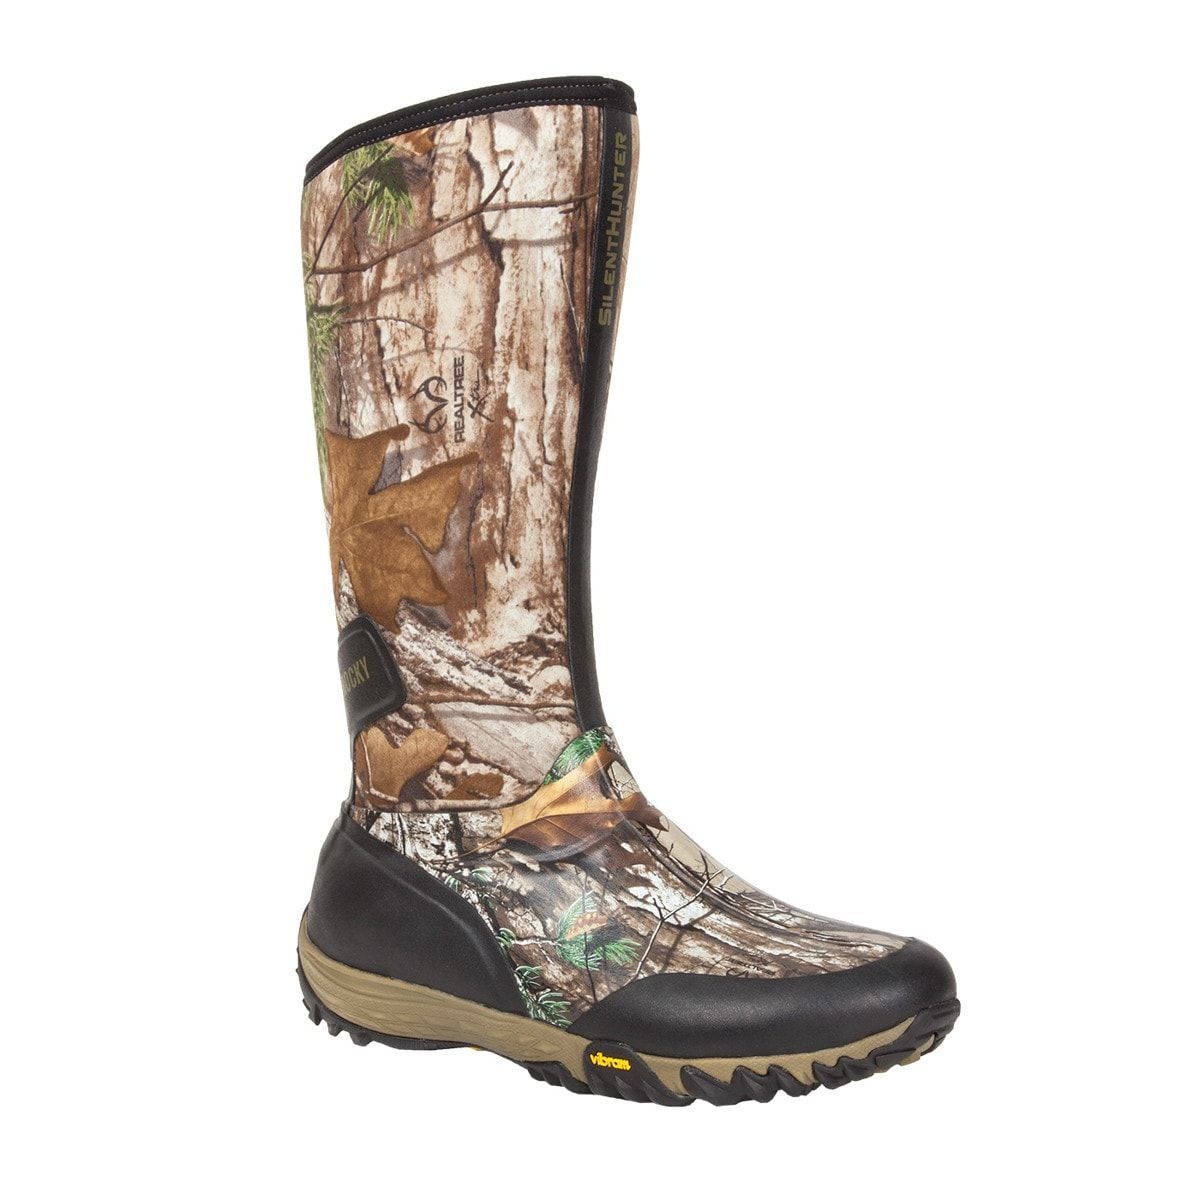 d8db79d75151a Rocky SilentHunter Mens Realtree Rubber Insulated Waterproof Hunting Boots